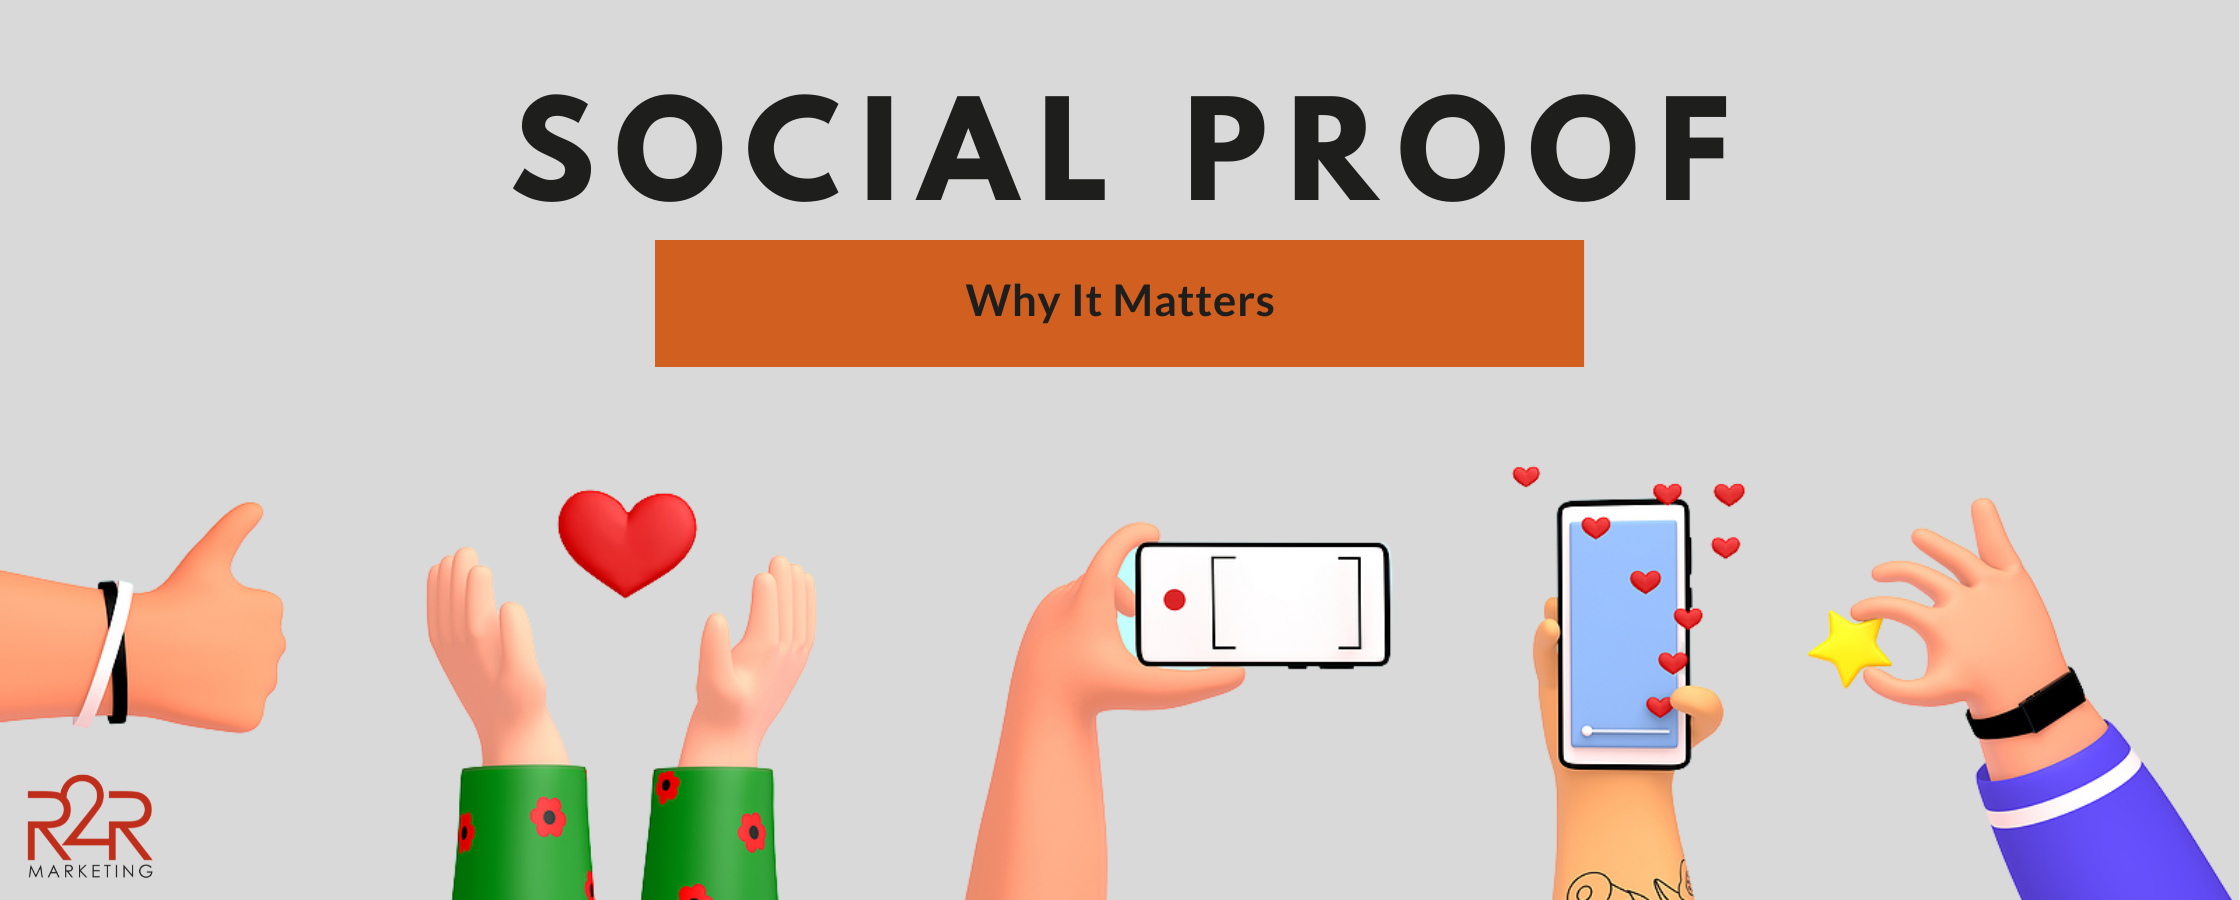 Social Proof: Why It Matters